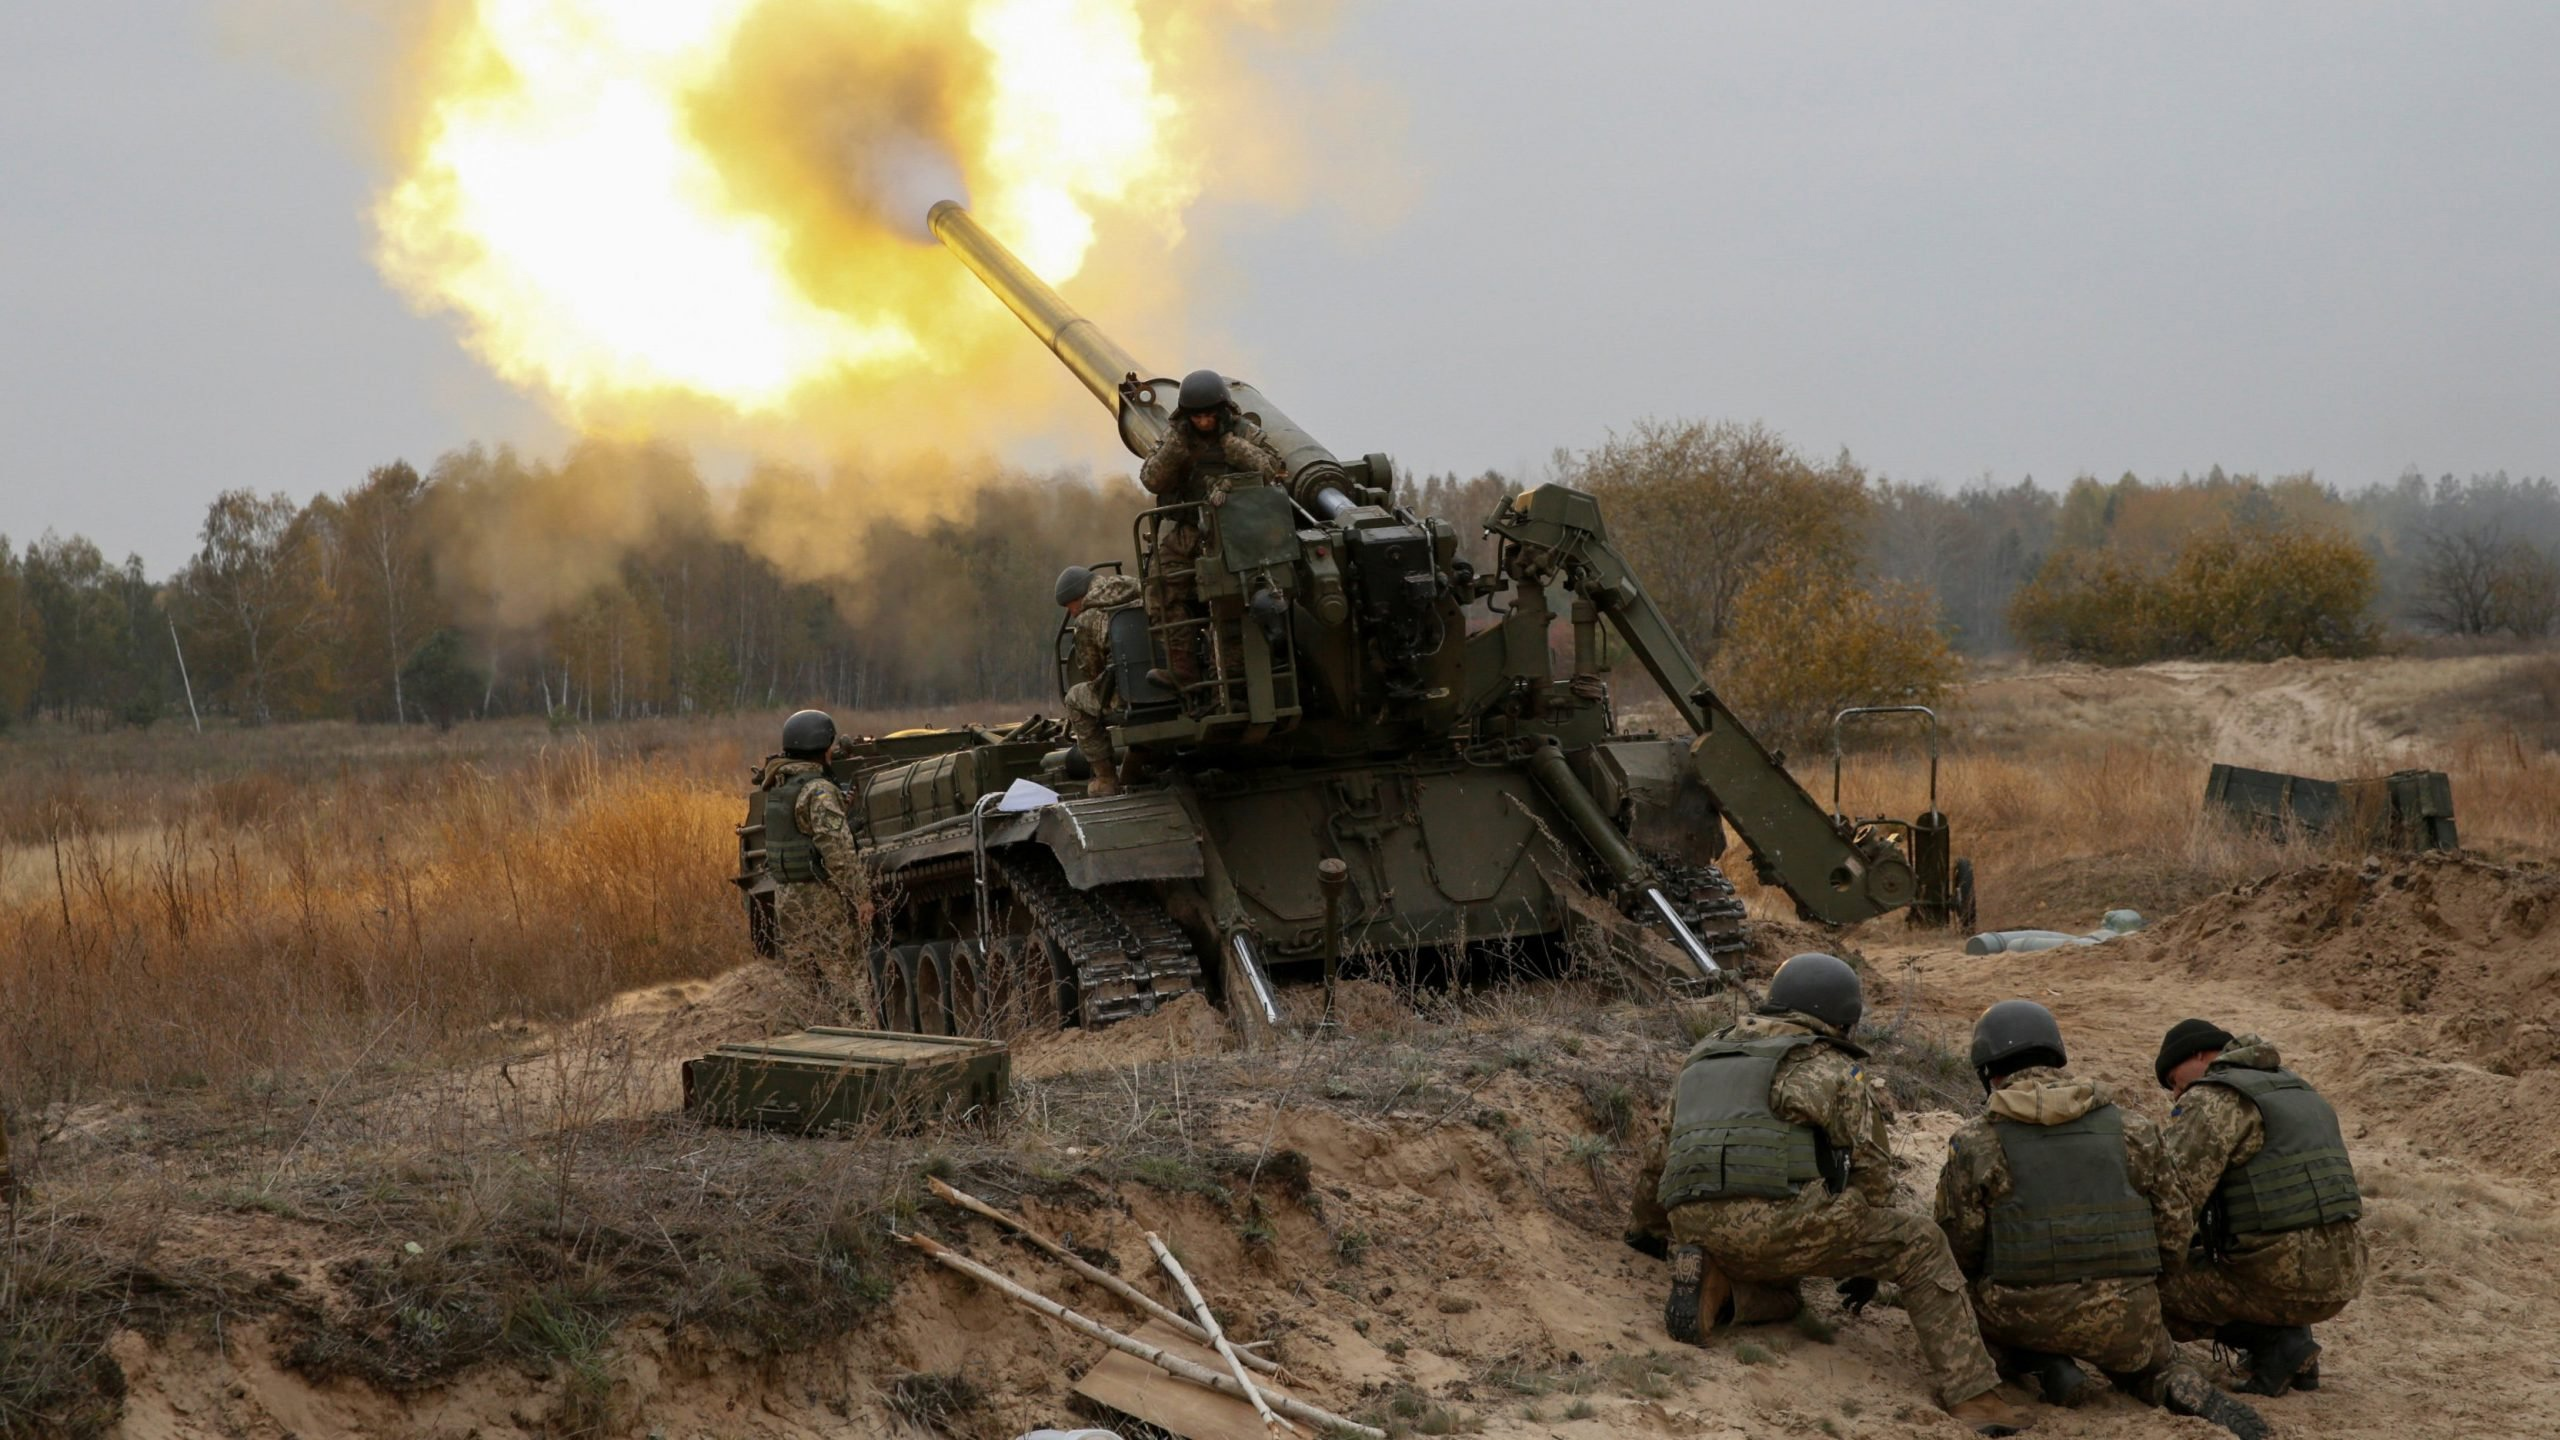 DPR People's Police reports punishers shelled Donetsk from artillery